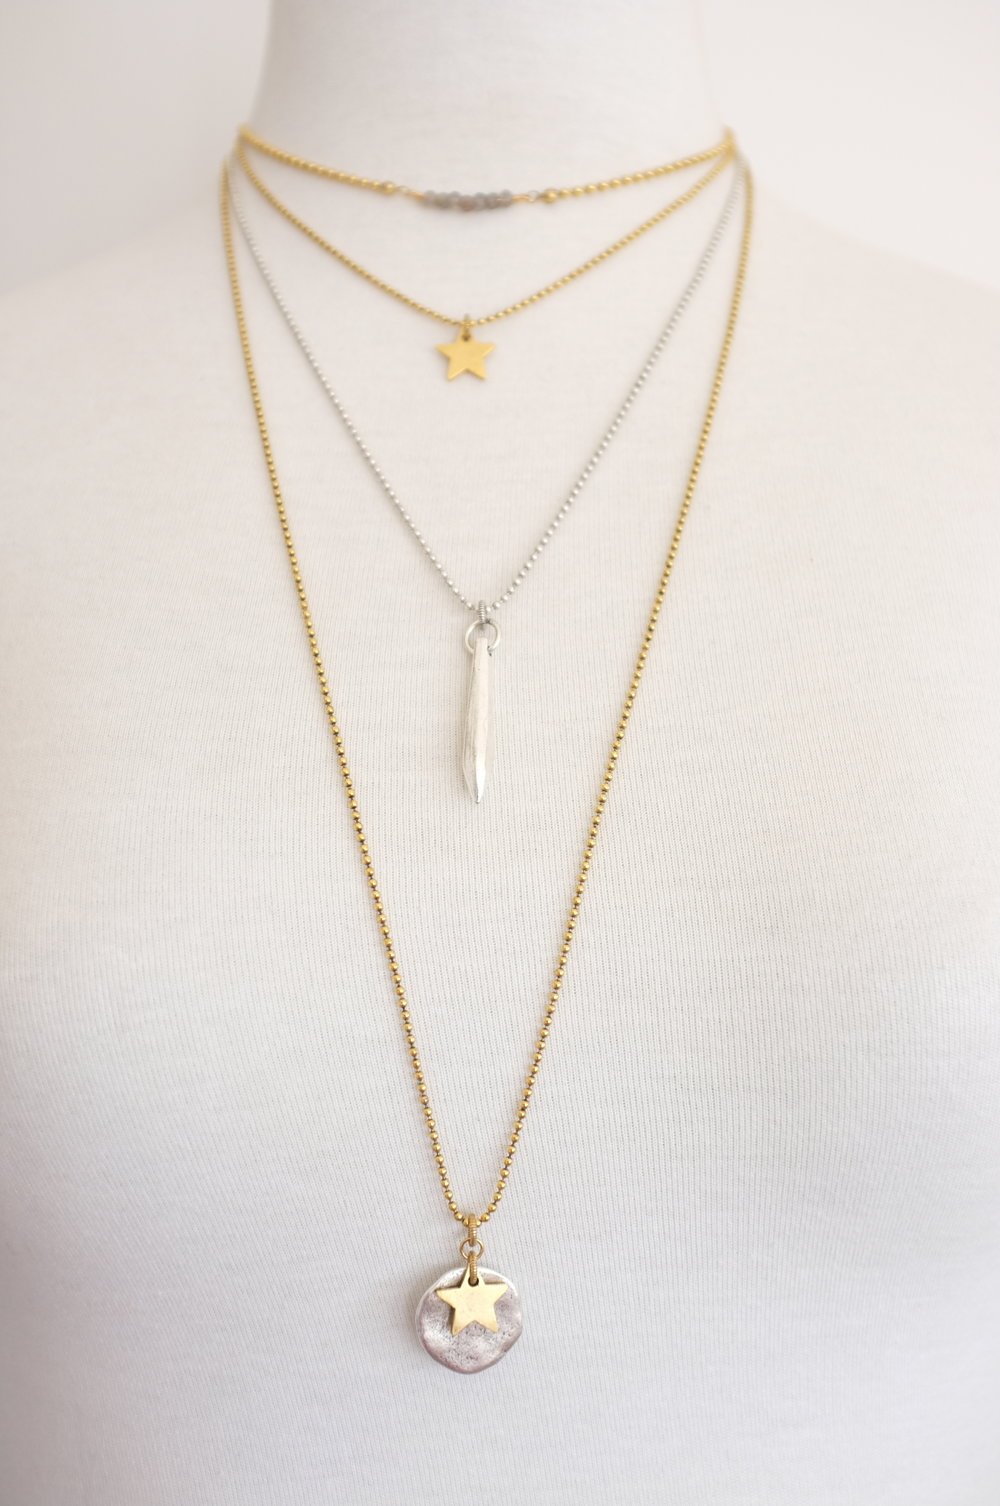 Ball chain designs are exact length. - No alteration clasp is available